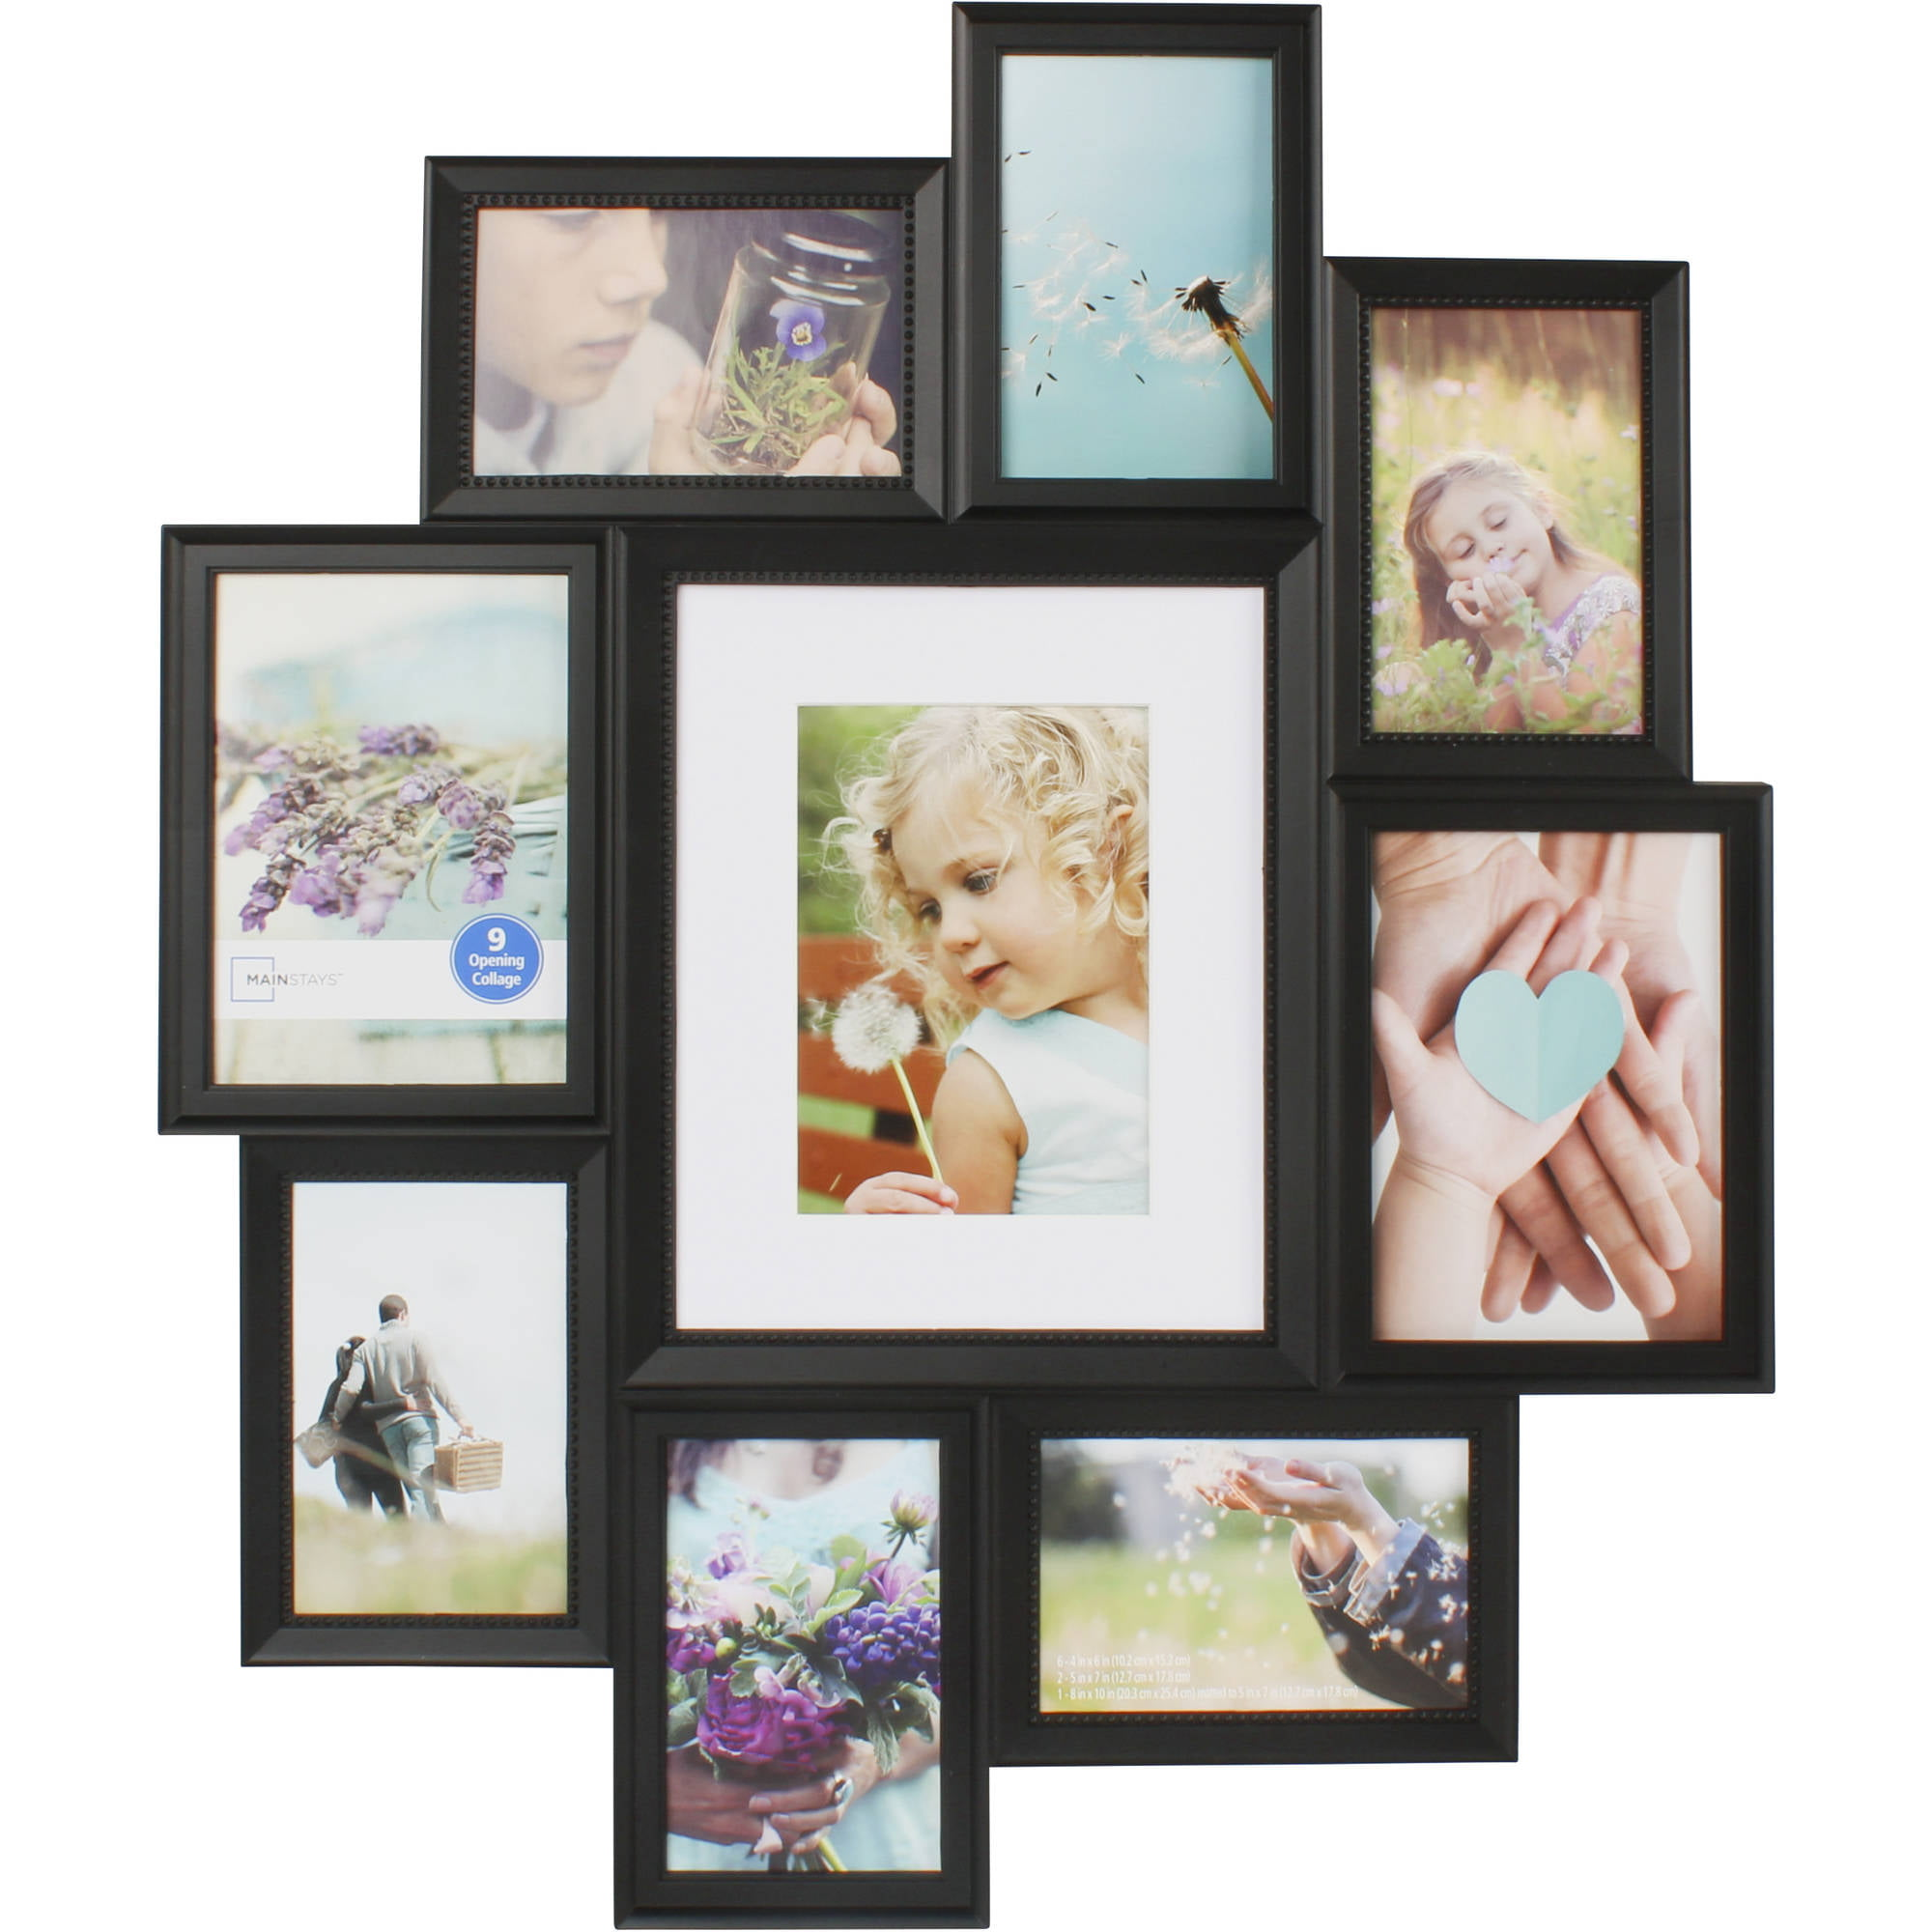 Mainstays 9-Opening Collage Frame, Black - Walmart.com